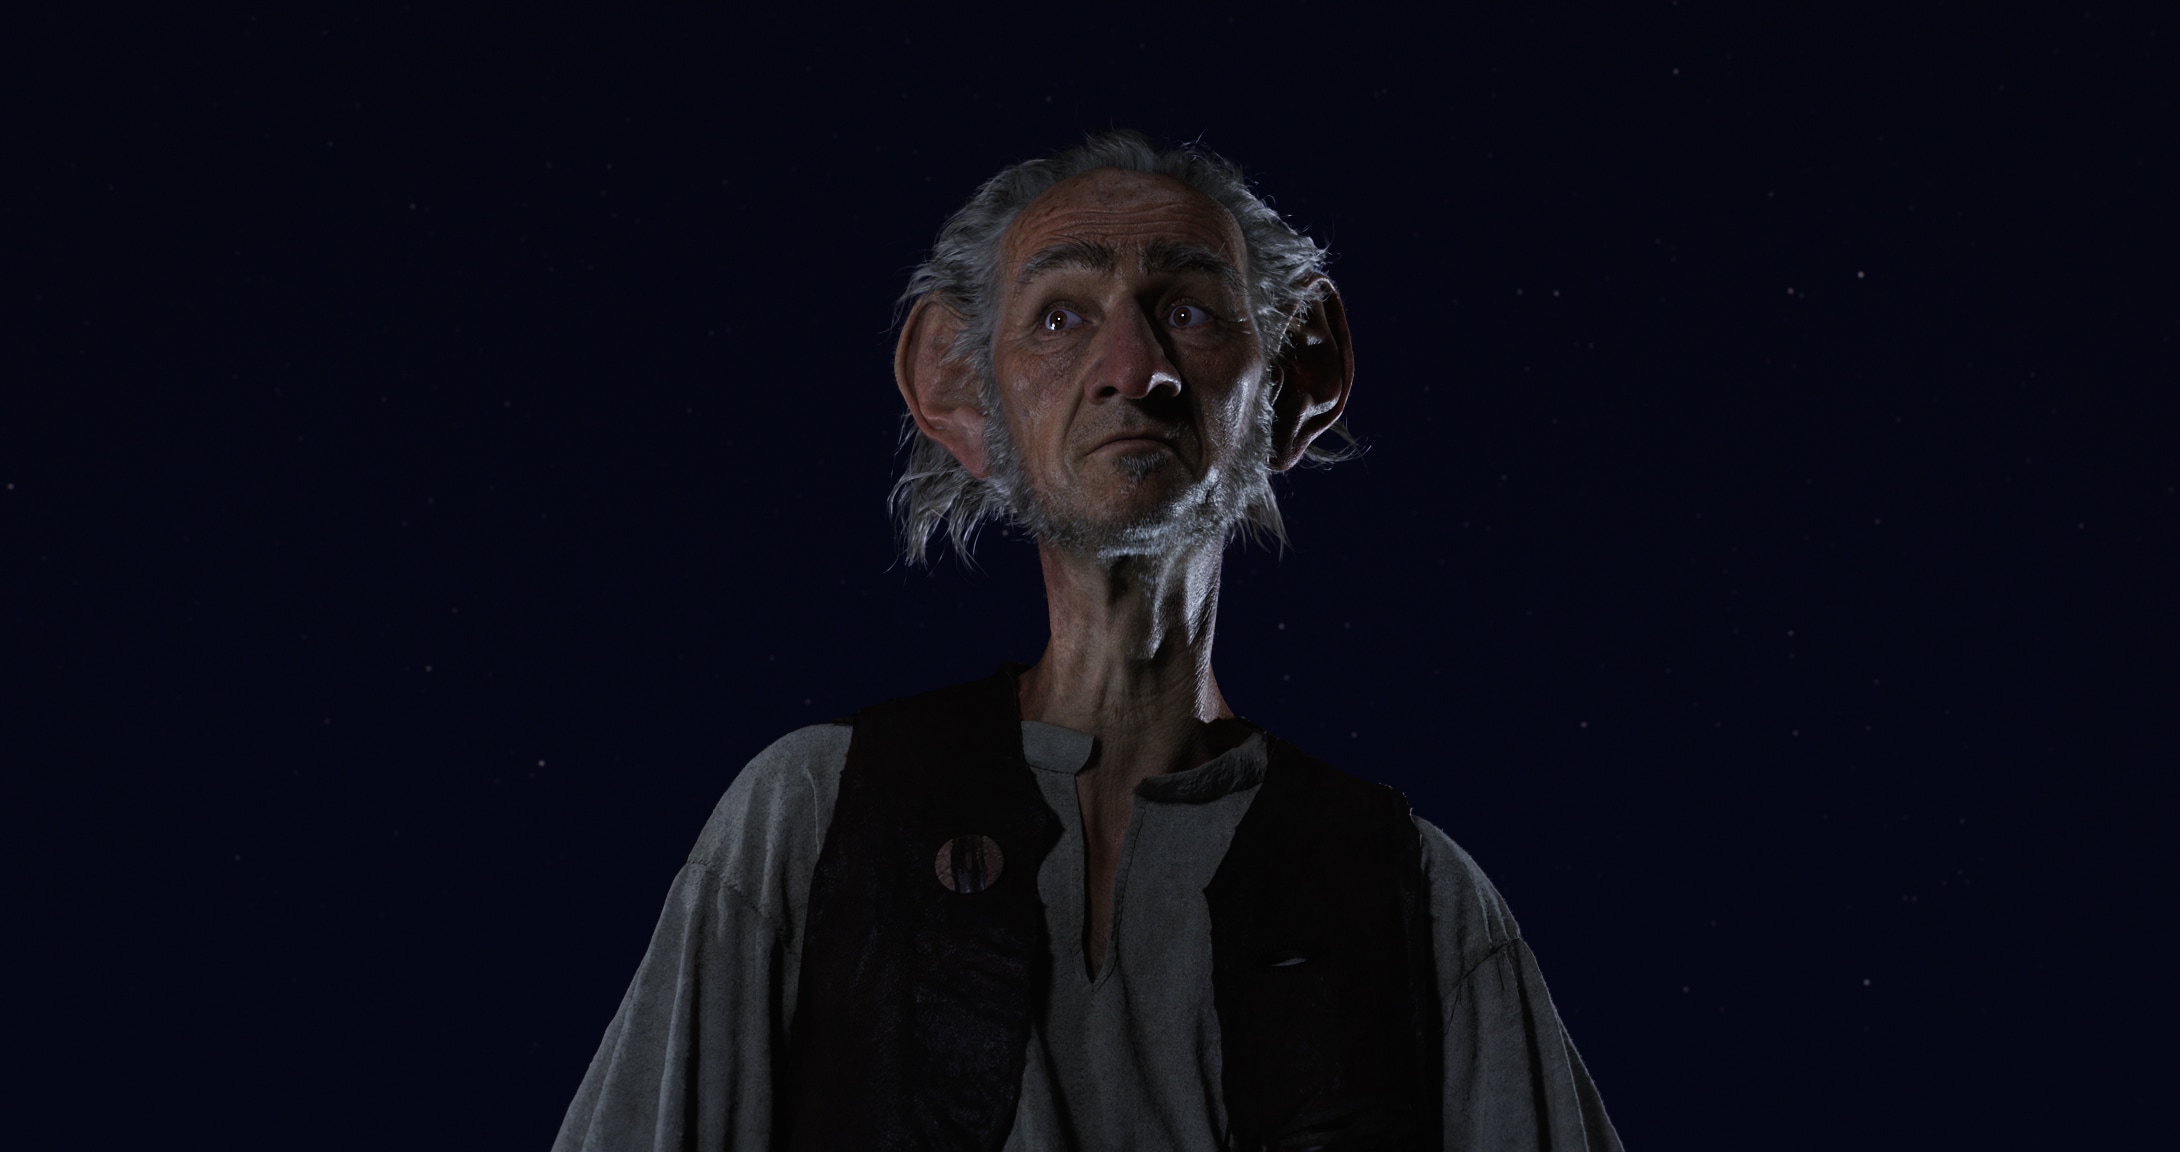 """Close-up image of The BFG (played by actor Mark Rylance) in the movie """"The BFG"""""""